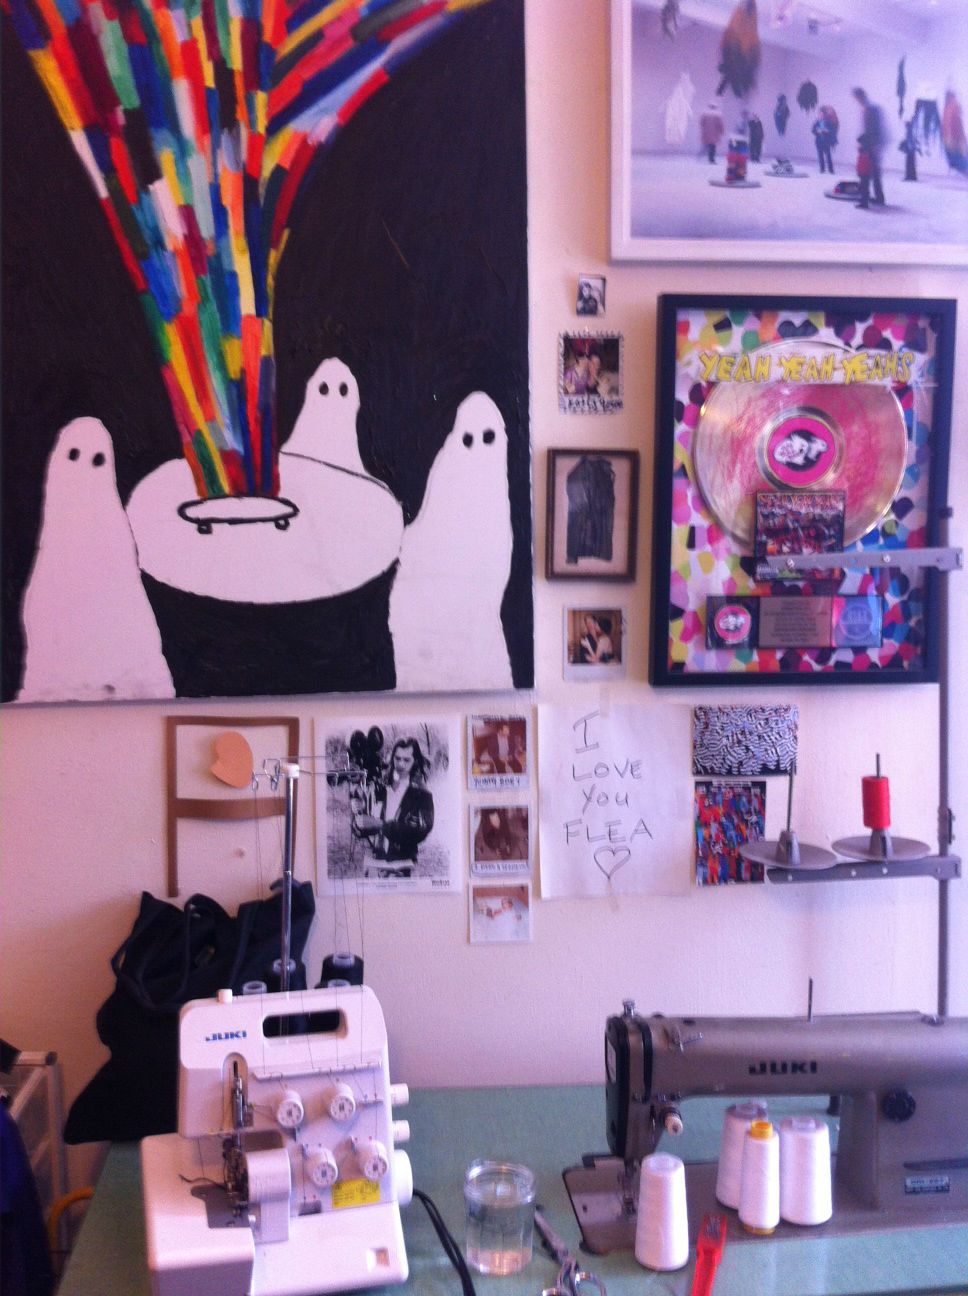 Christian Joy's Greenpoint studio (Photo: Araceli Cruz)